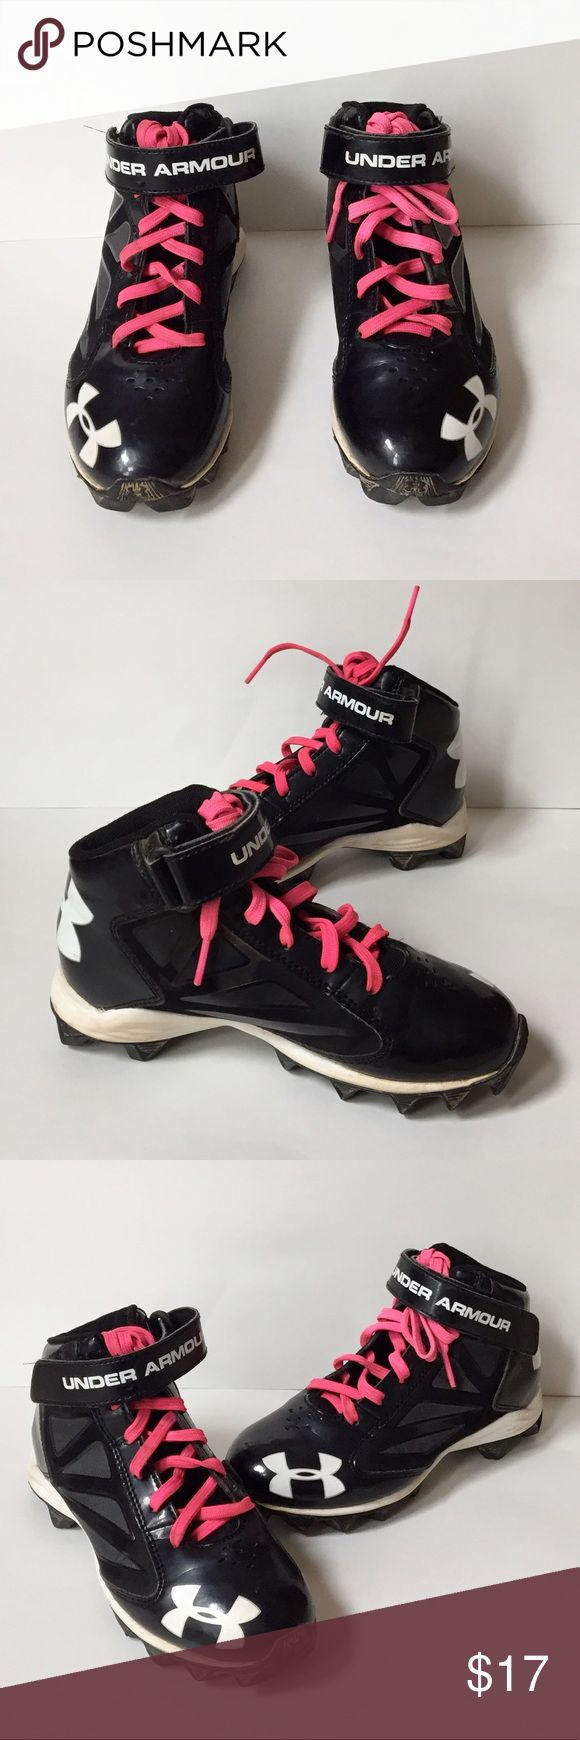 Under Armour Girls' Baseball and Soccer Cleats Soccer and baseball season is here! Equip your little athlete with these black and white high top cleats with pink laces. They lace up and have a velcro strap. Under Armour Shoes